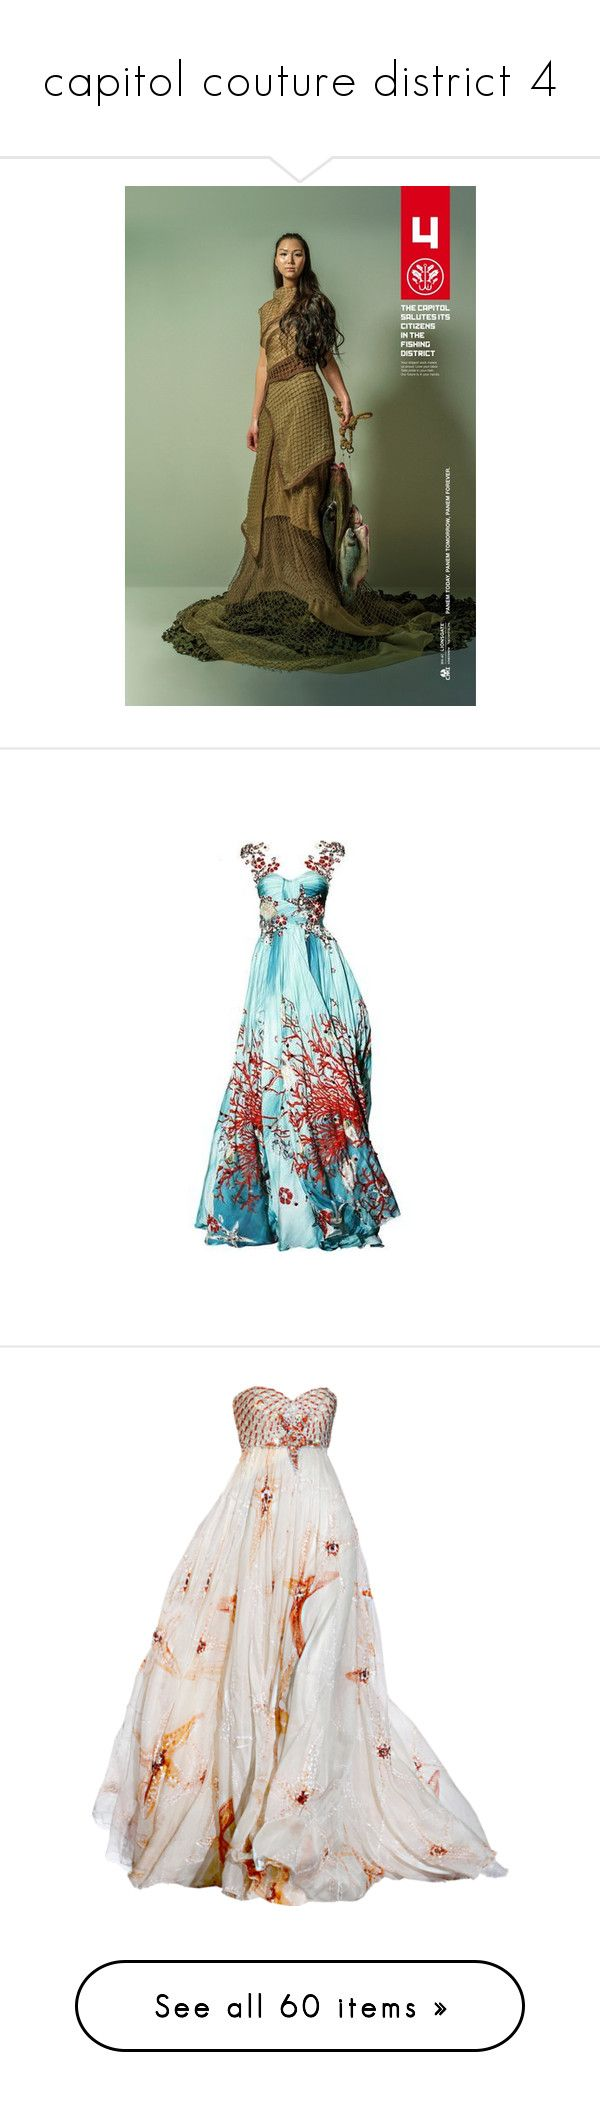 """capitol couture district 4"" by rebellious-ingenue ❤ liked on Polyvore featuring dresses, gown, abiti, blue dress, gowns, long dresses, vestidos, zuhair murad gowns, zuhair murad evening gowns and zuhair murad dresses"